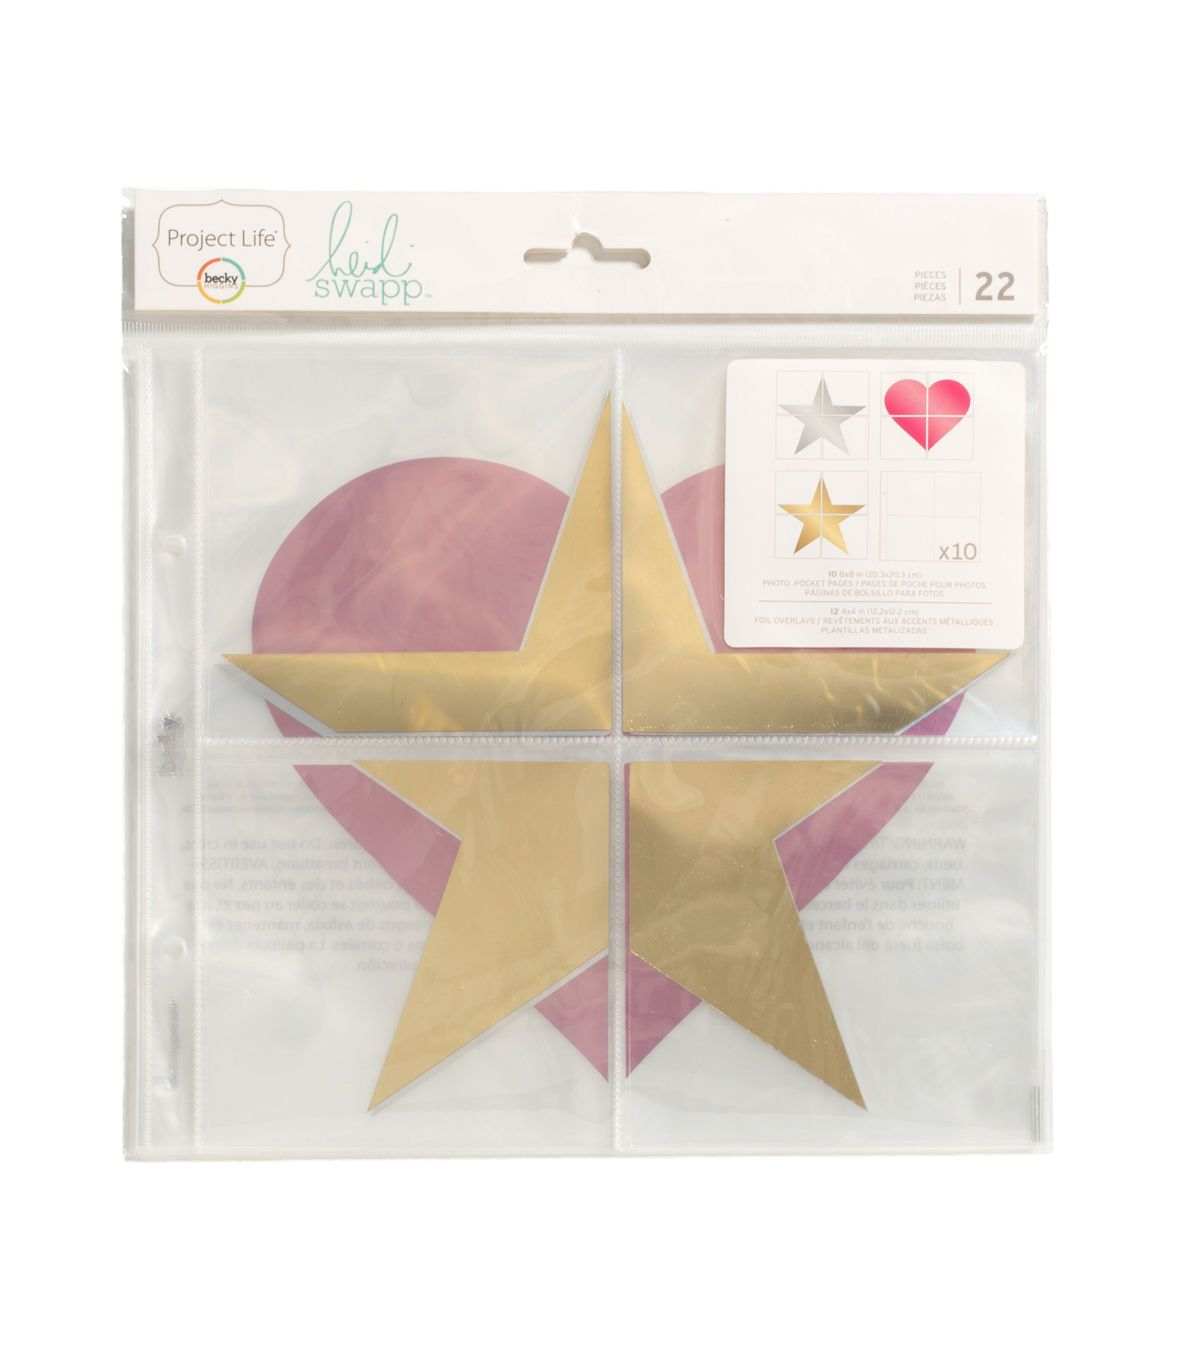 Project Life Heidi Swapp 22 Pack Pocket Pages